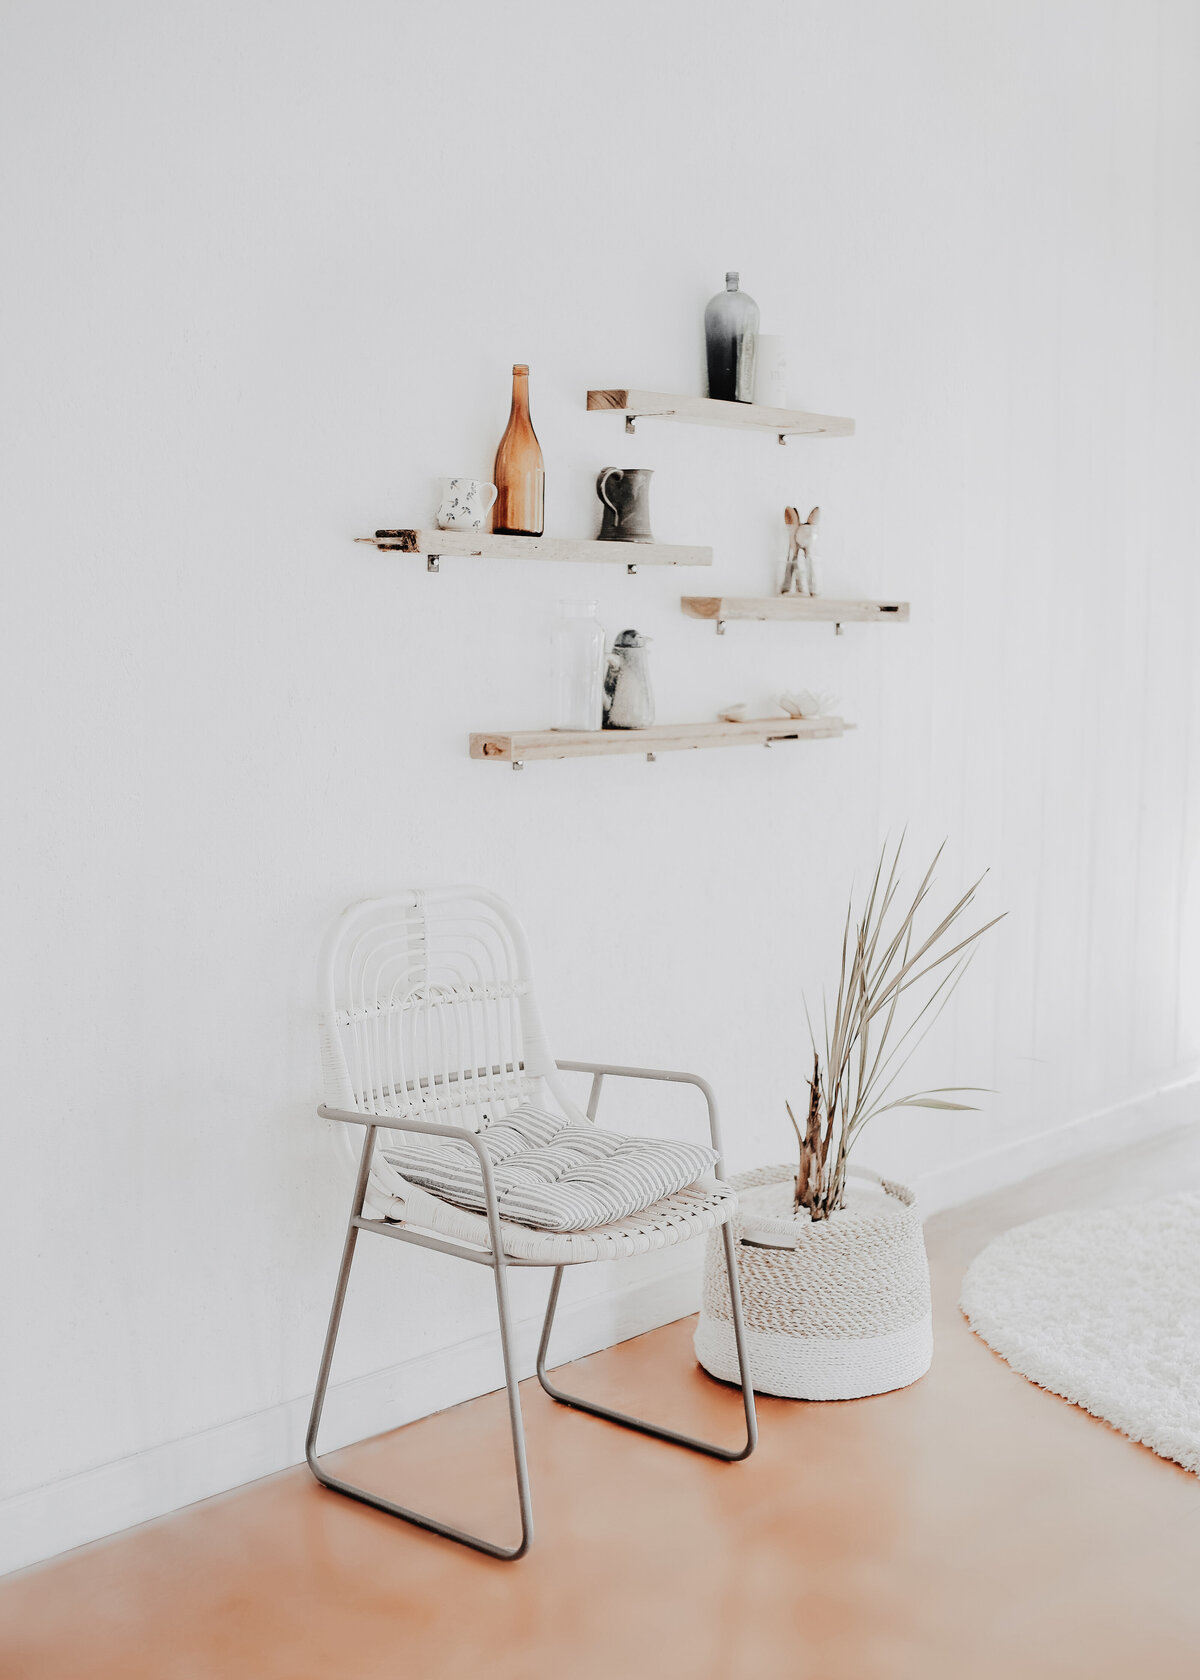 A minimal white decor with wooden shelves and a white rattan chair with a palm in a white basket.